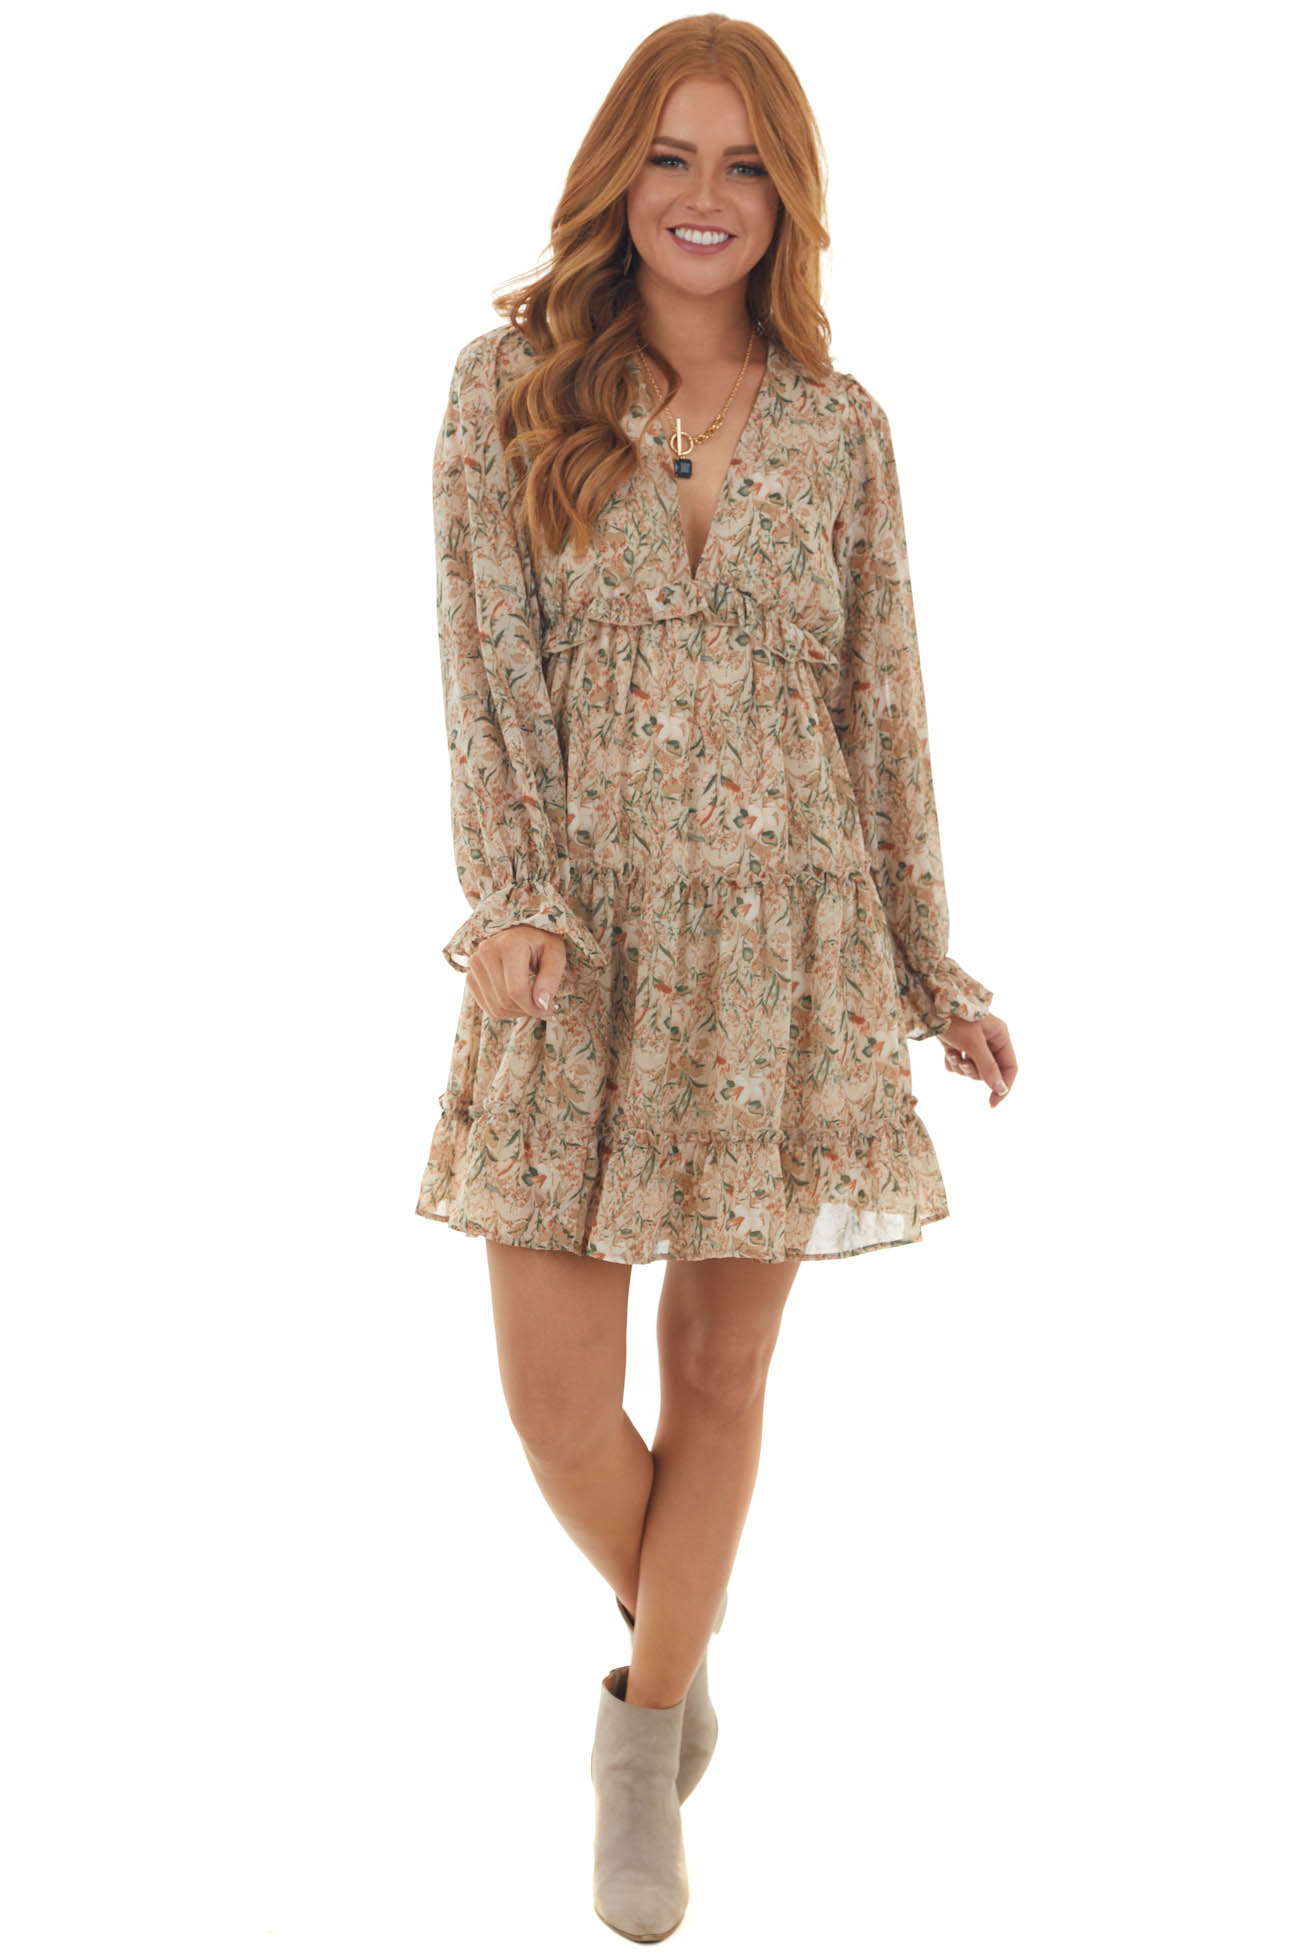 Nude Floral Print Mini Dress with Open Back